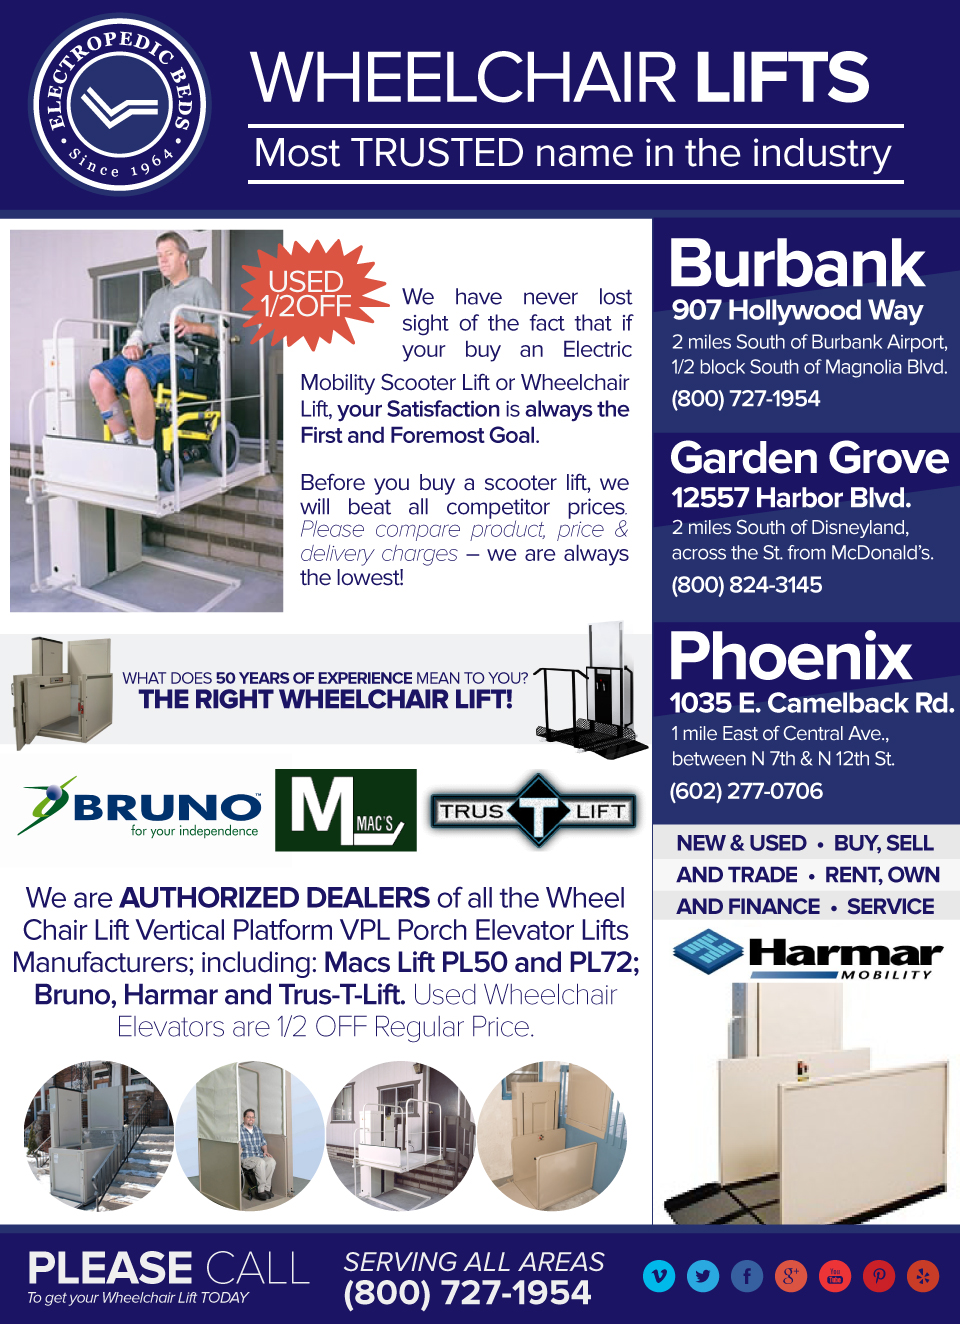 wheel chair lifts orange county ca Wheelchair Elevators macs vertical platform lift bruno vpl3100 commercial porchlift residential mobility home for porch